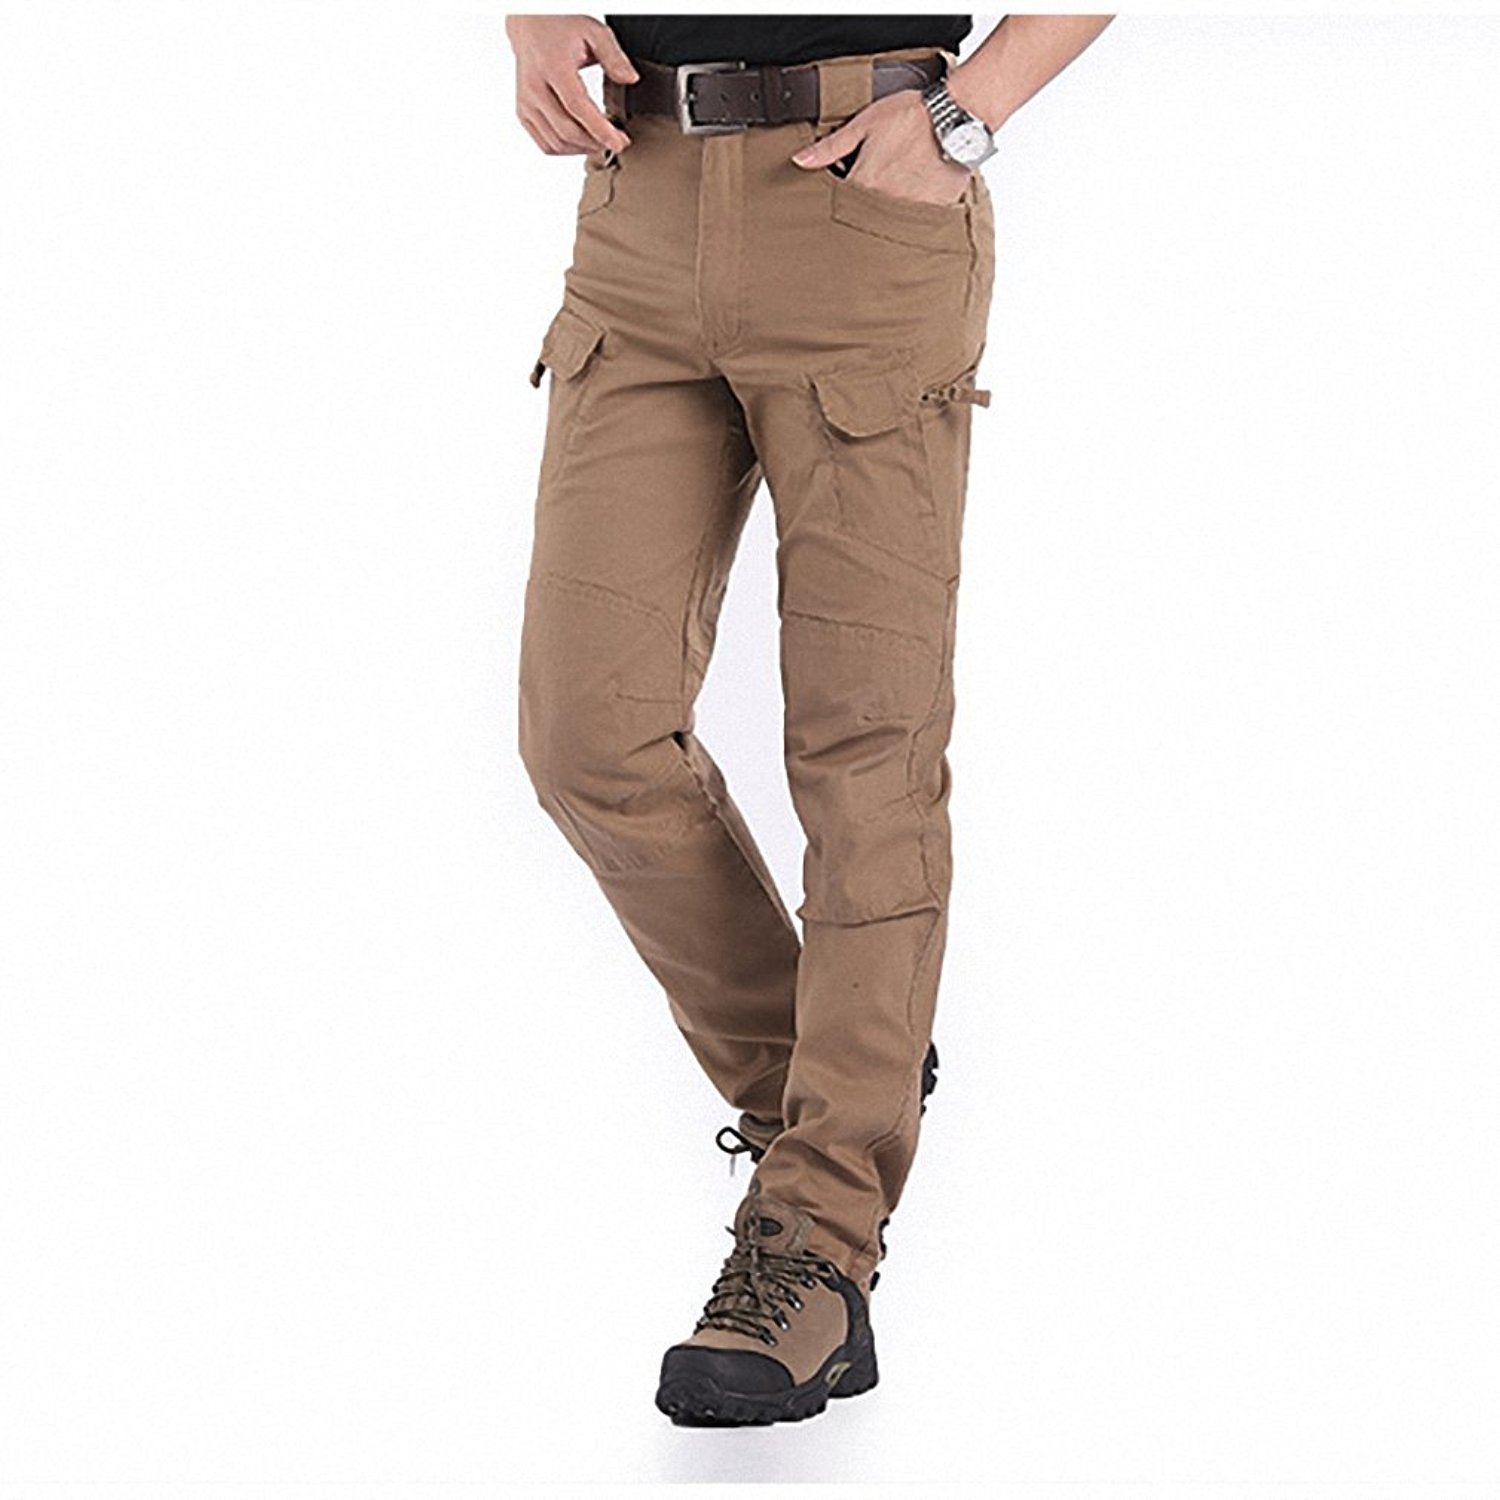 c0031a4c9a Get Quotations · Tactical clothing men cargo pants IX7 military trousers,  spring summer casual military army pants,